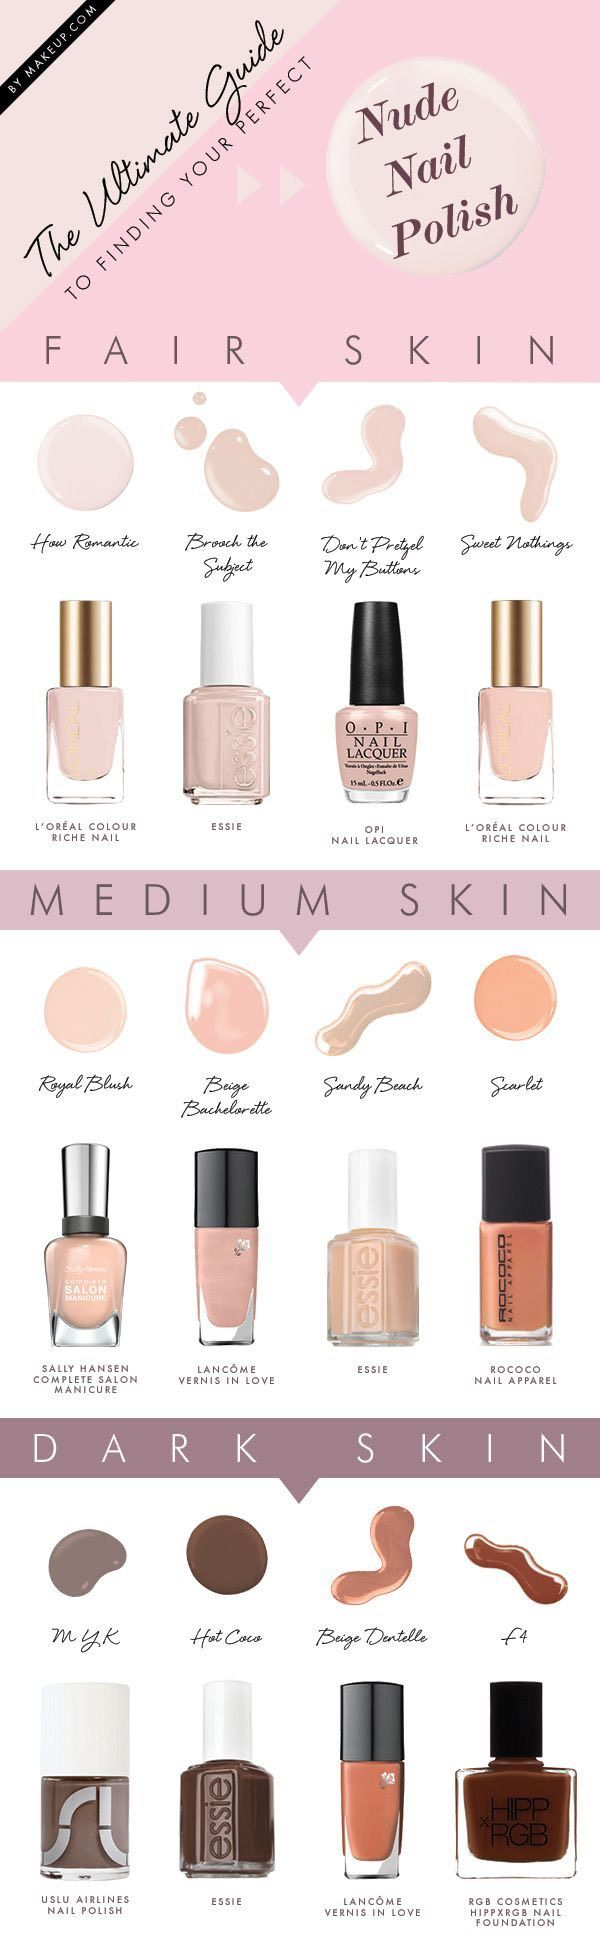 Find the perfect nude polish for your skin tone! Photo via Makeup.com